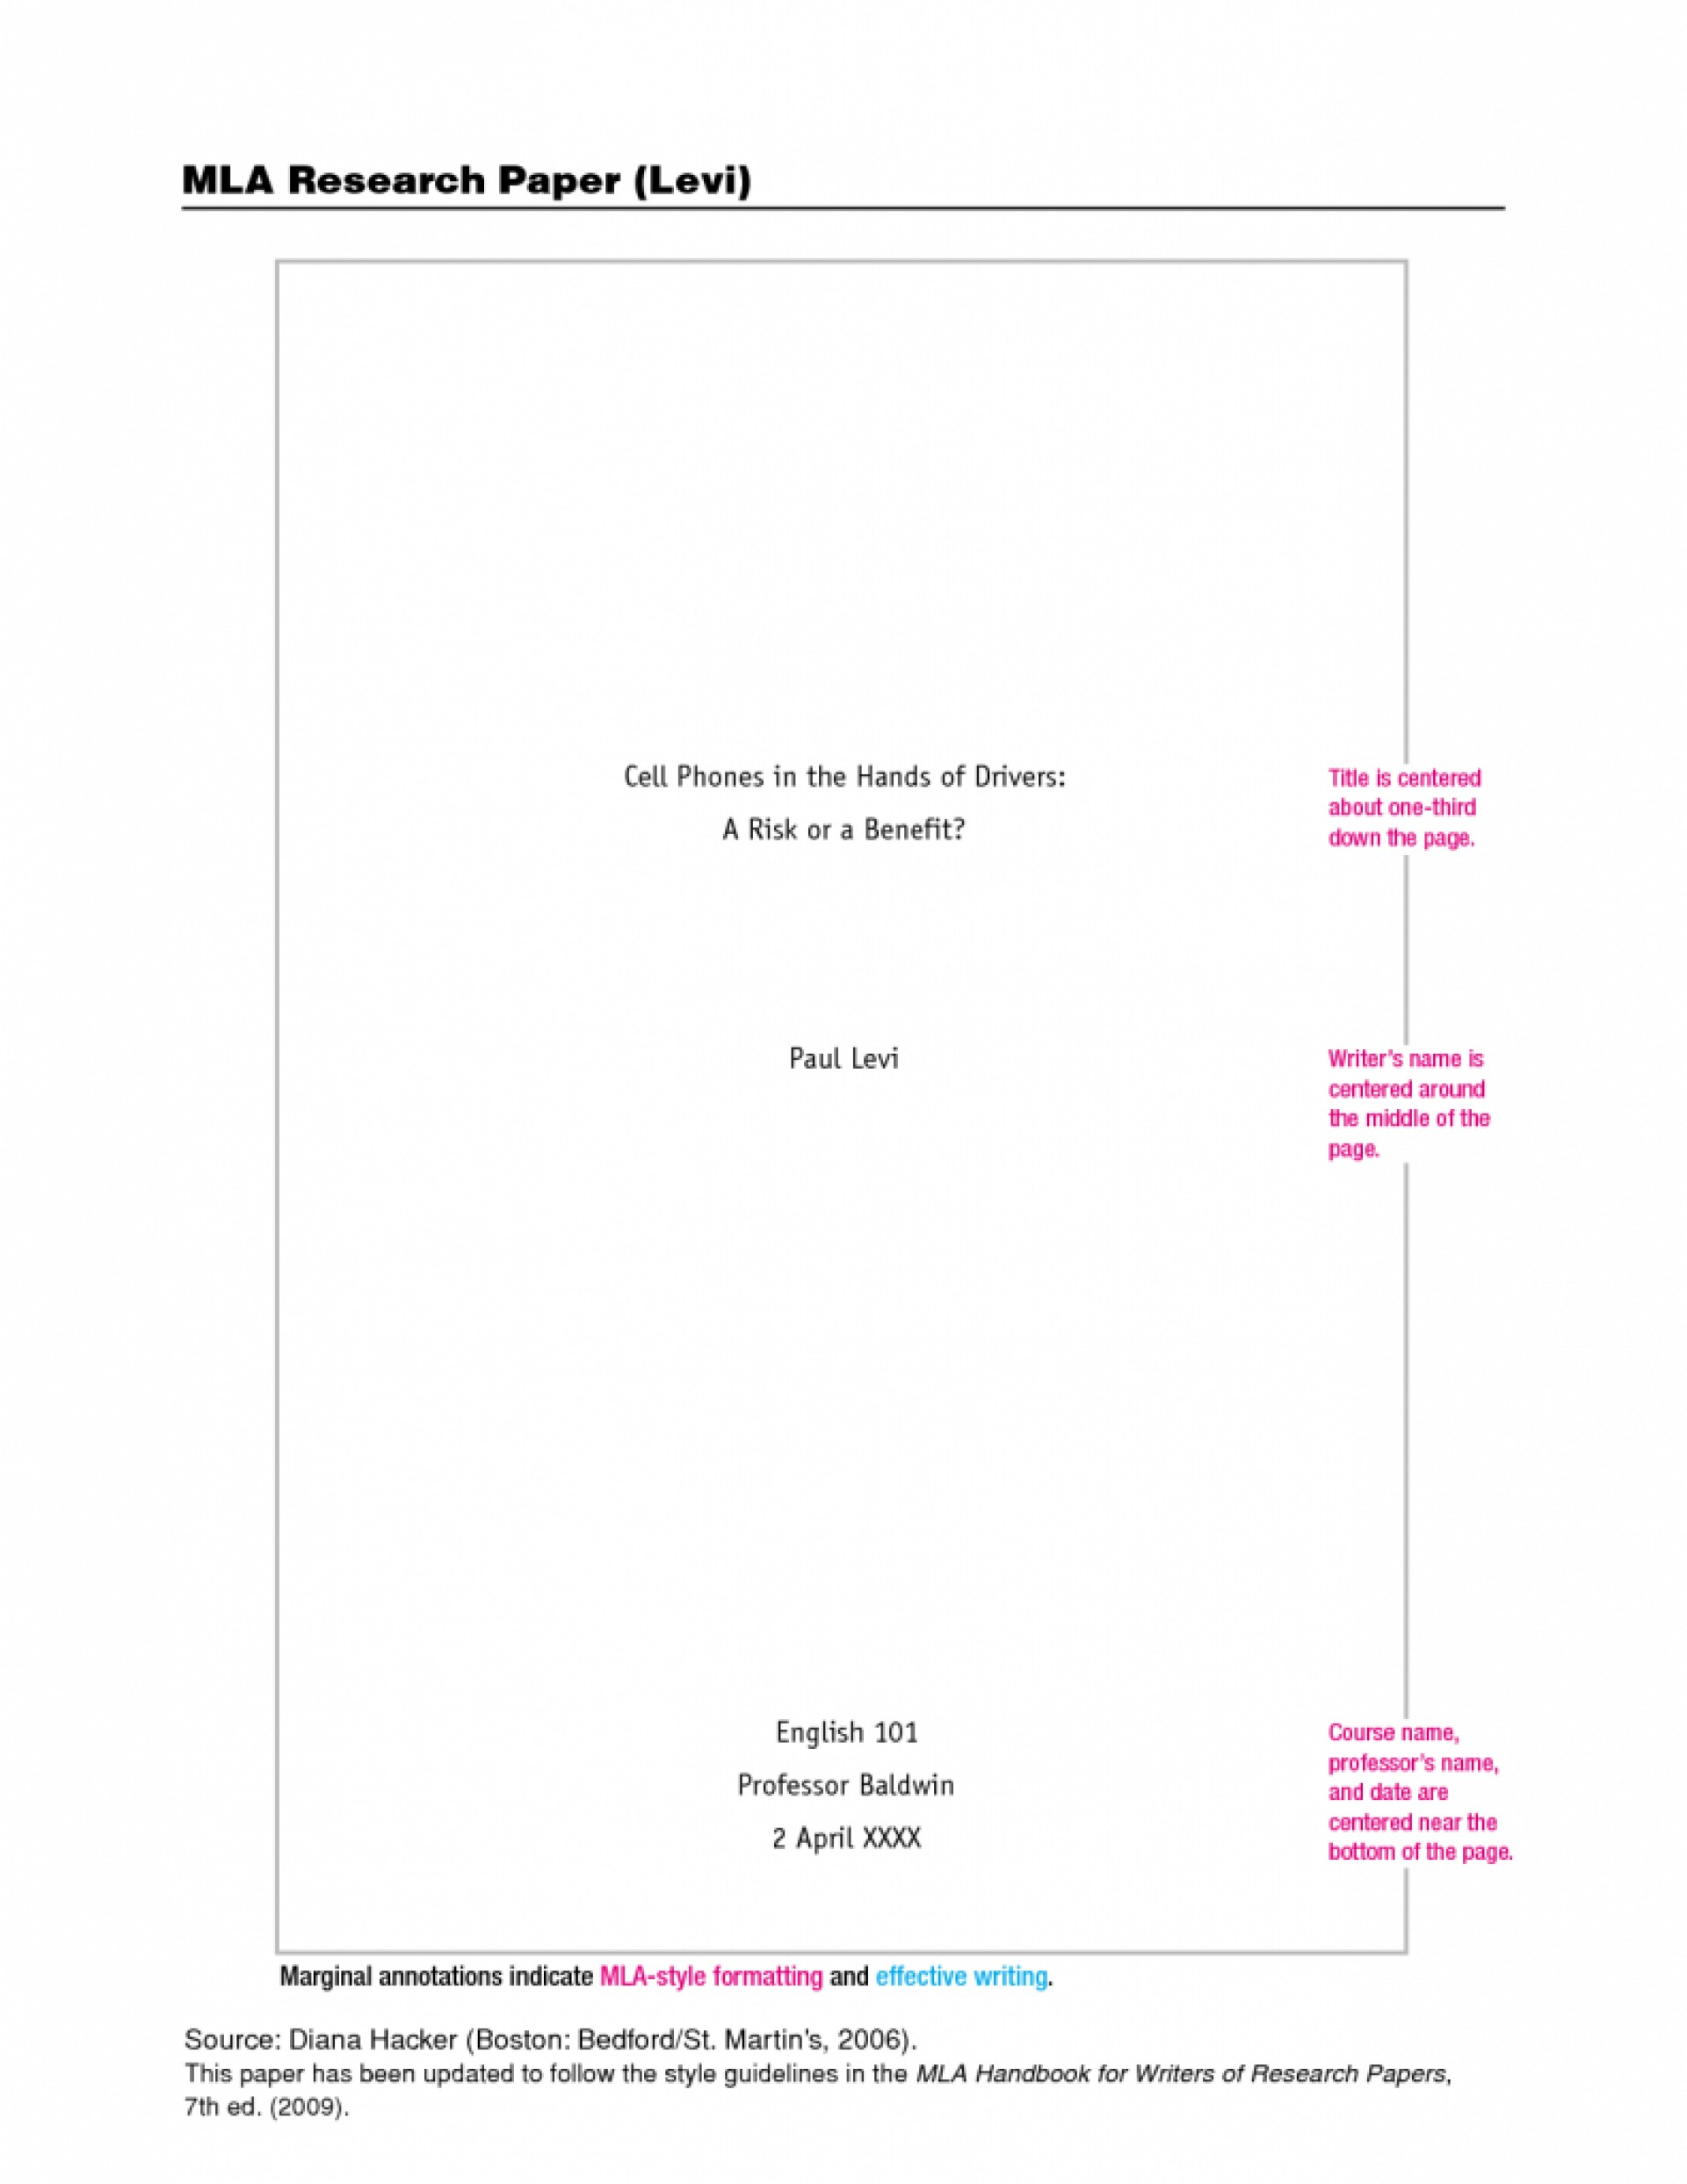 017 Awesome Collection Of Mla Cover Page Format Research Paper For Sample 791x1024 Formidable Sheet Example Harvard 1920